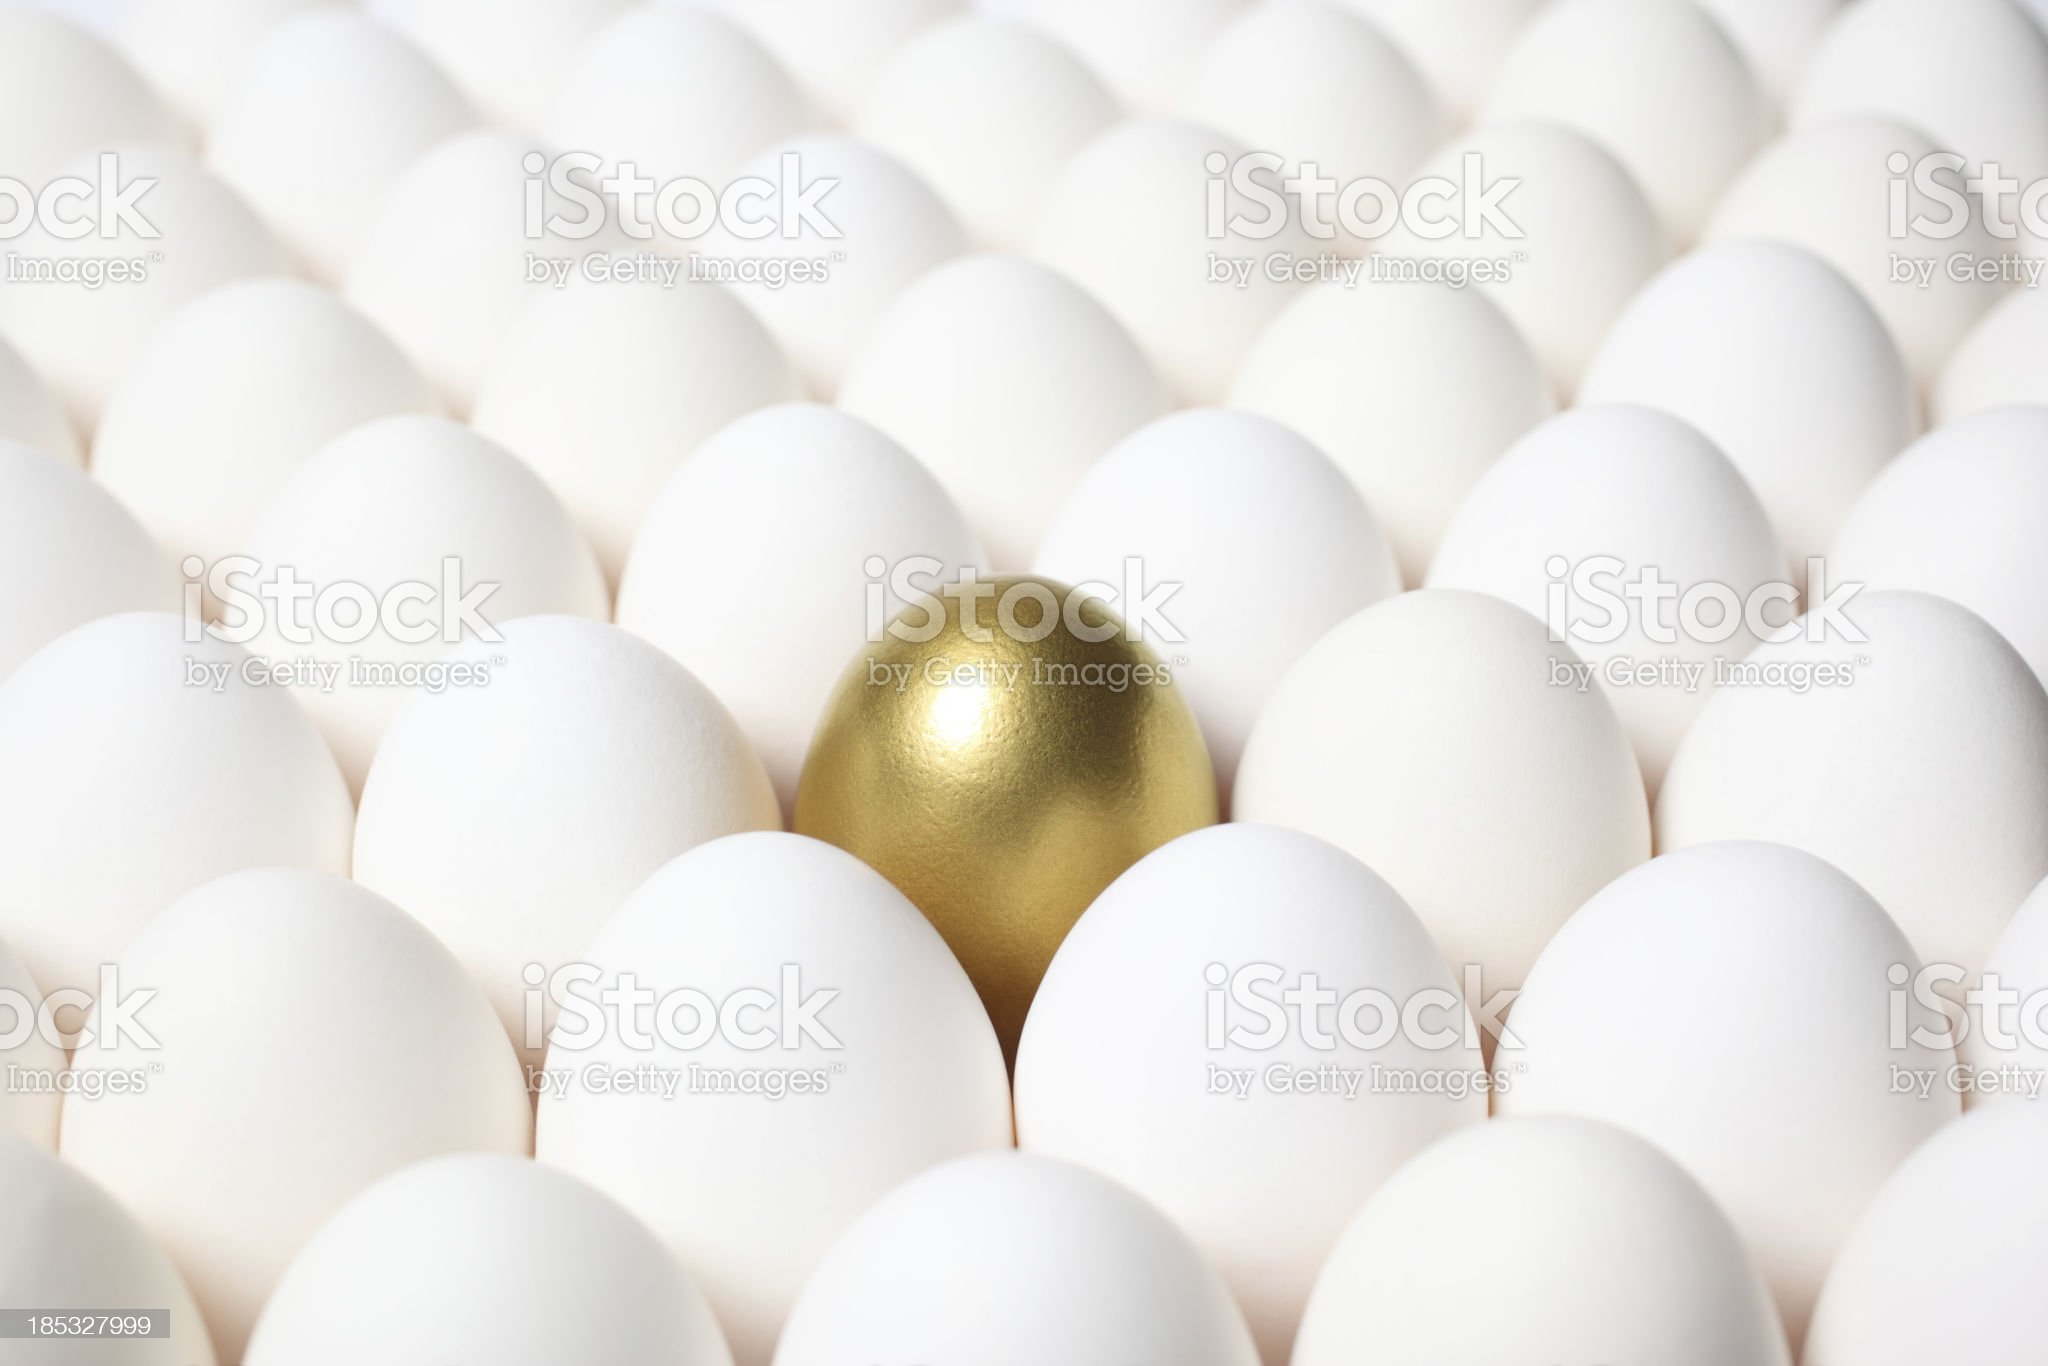 Golden Egg Standing Out from a Crowd of Ordinary Eggs royalty-free stock photo